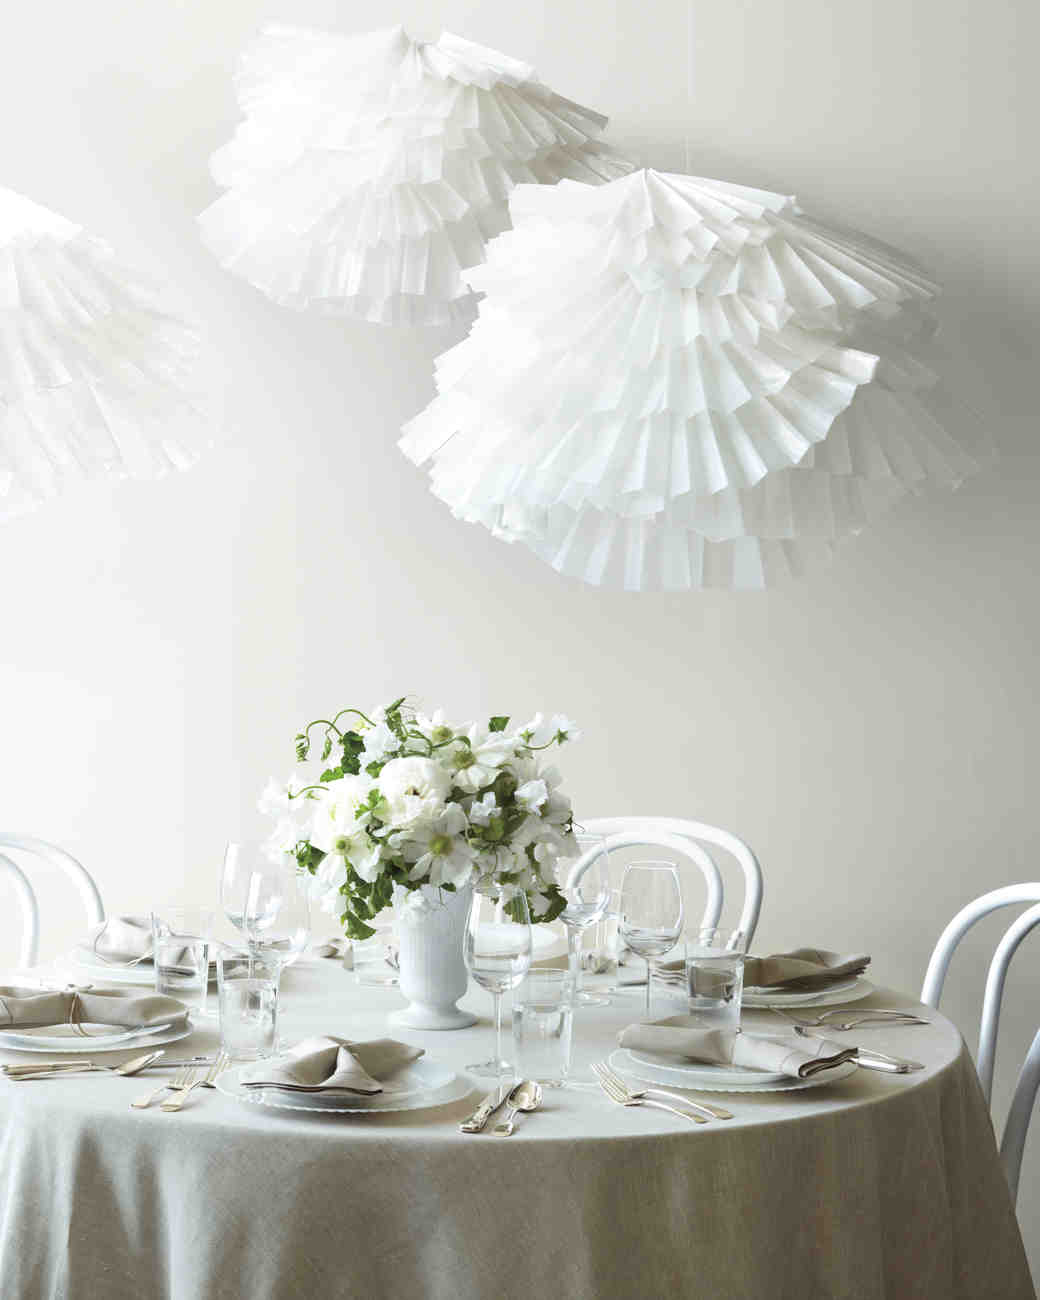 Easy-to-Make Paper Decorations For Your Wedding & 18 Creative Ways to Set Your Reception Tables | Martha Stewart Weddings